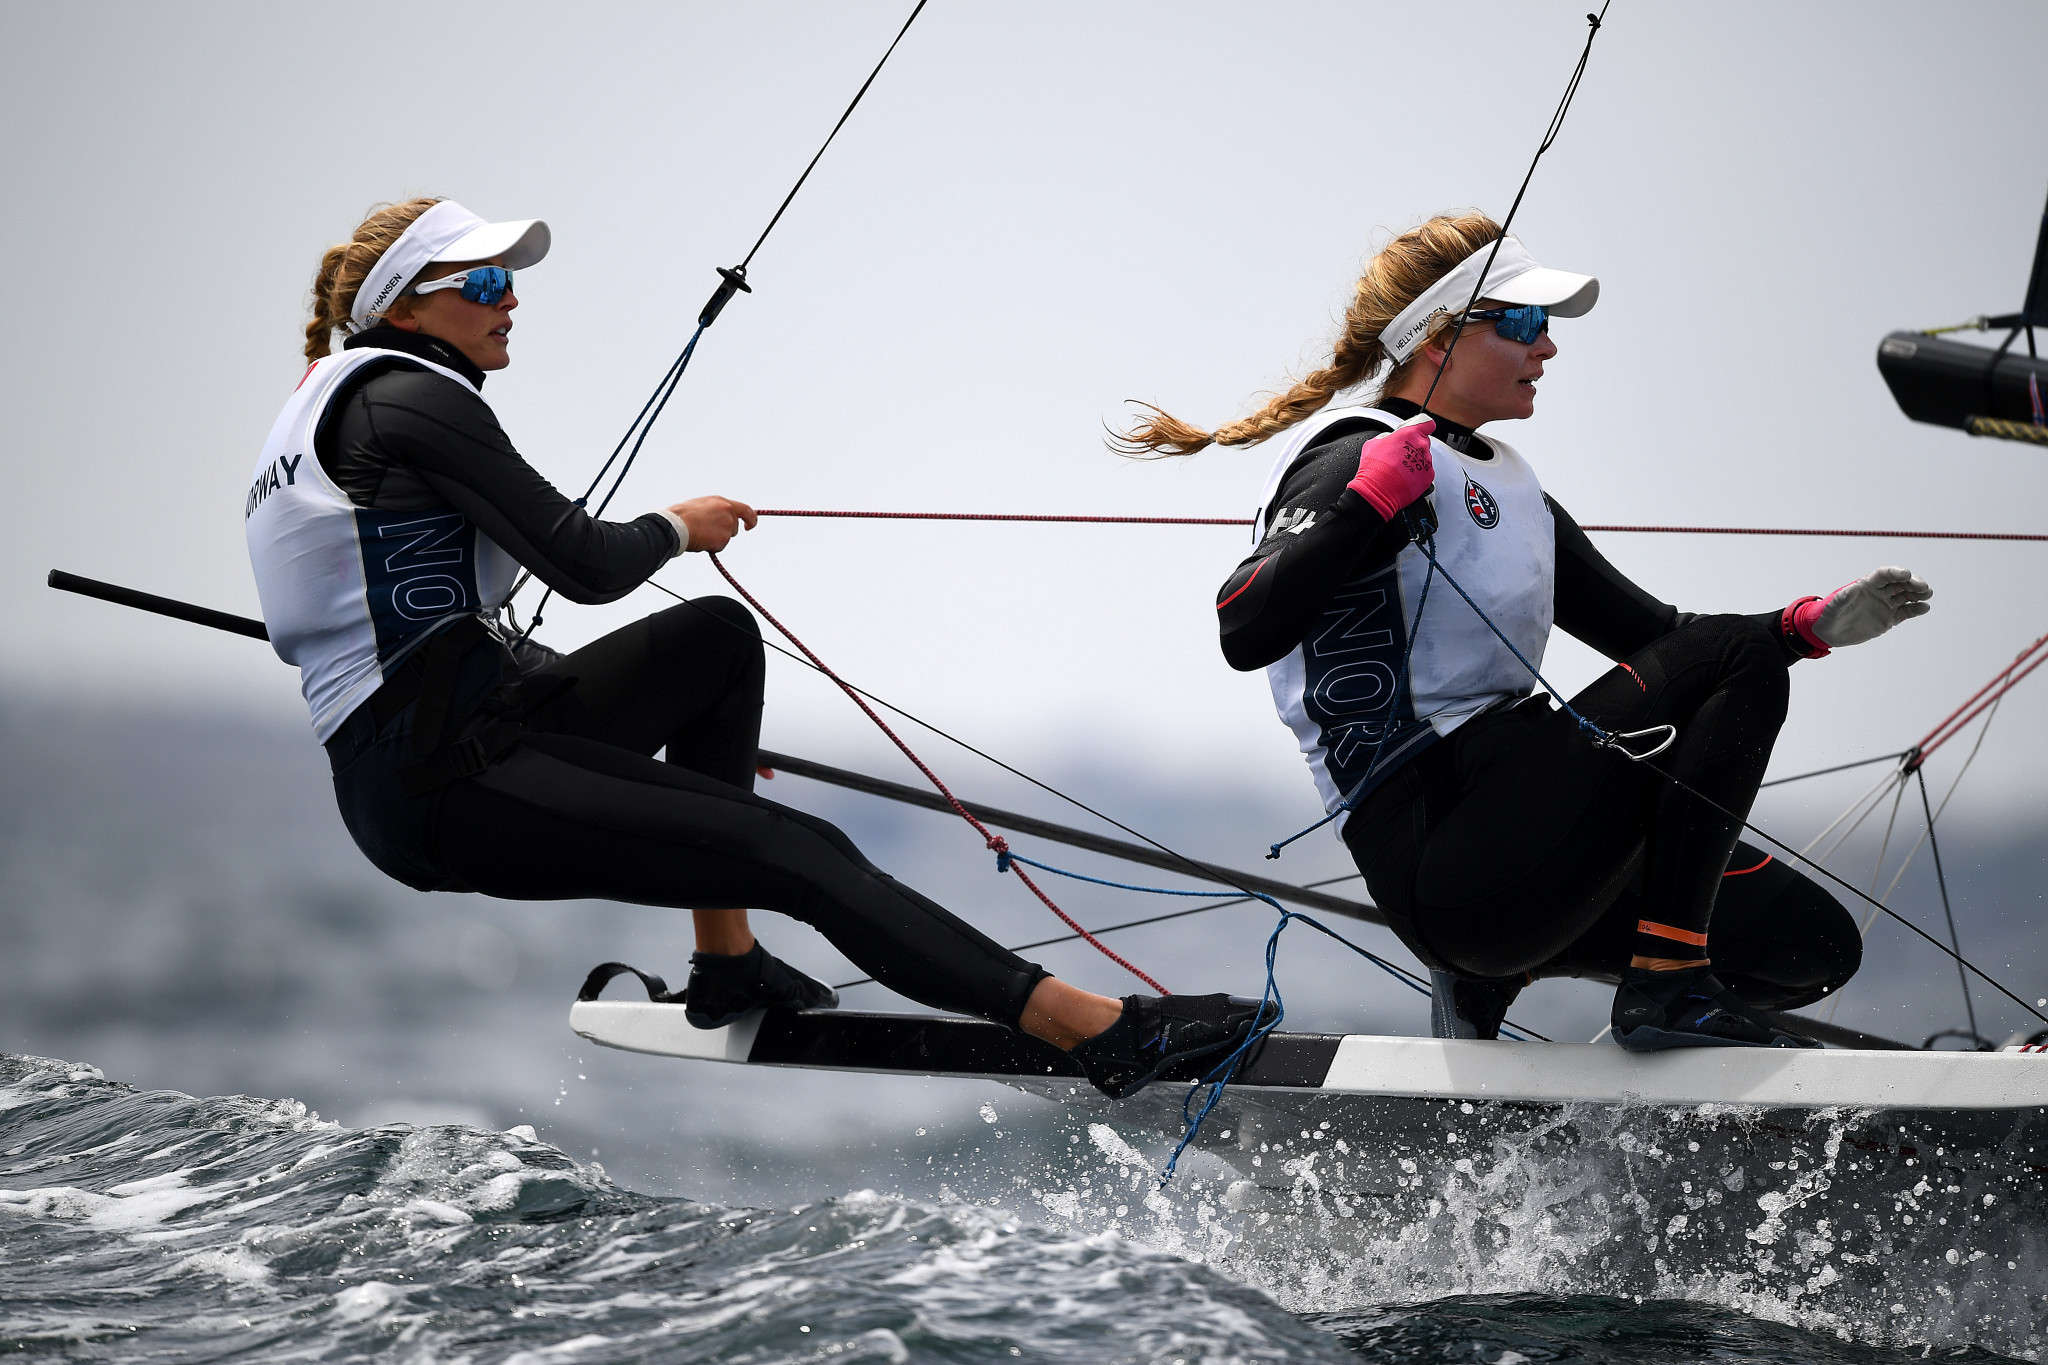 Norway's Helene Næss and Marie Rønningen lead the 49er FX class ©Getty Images